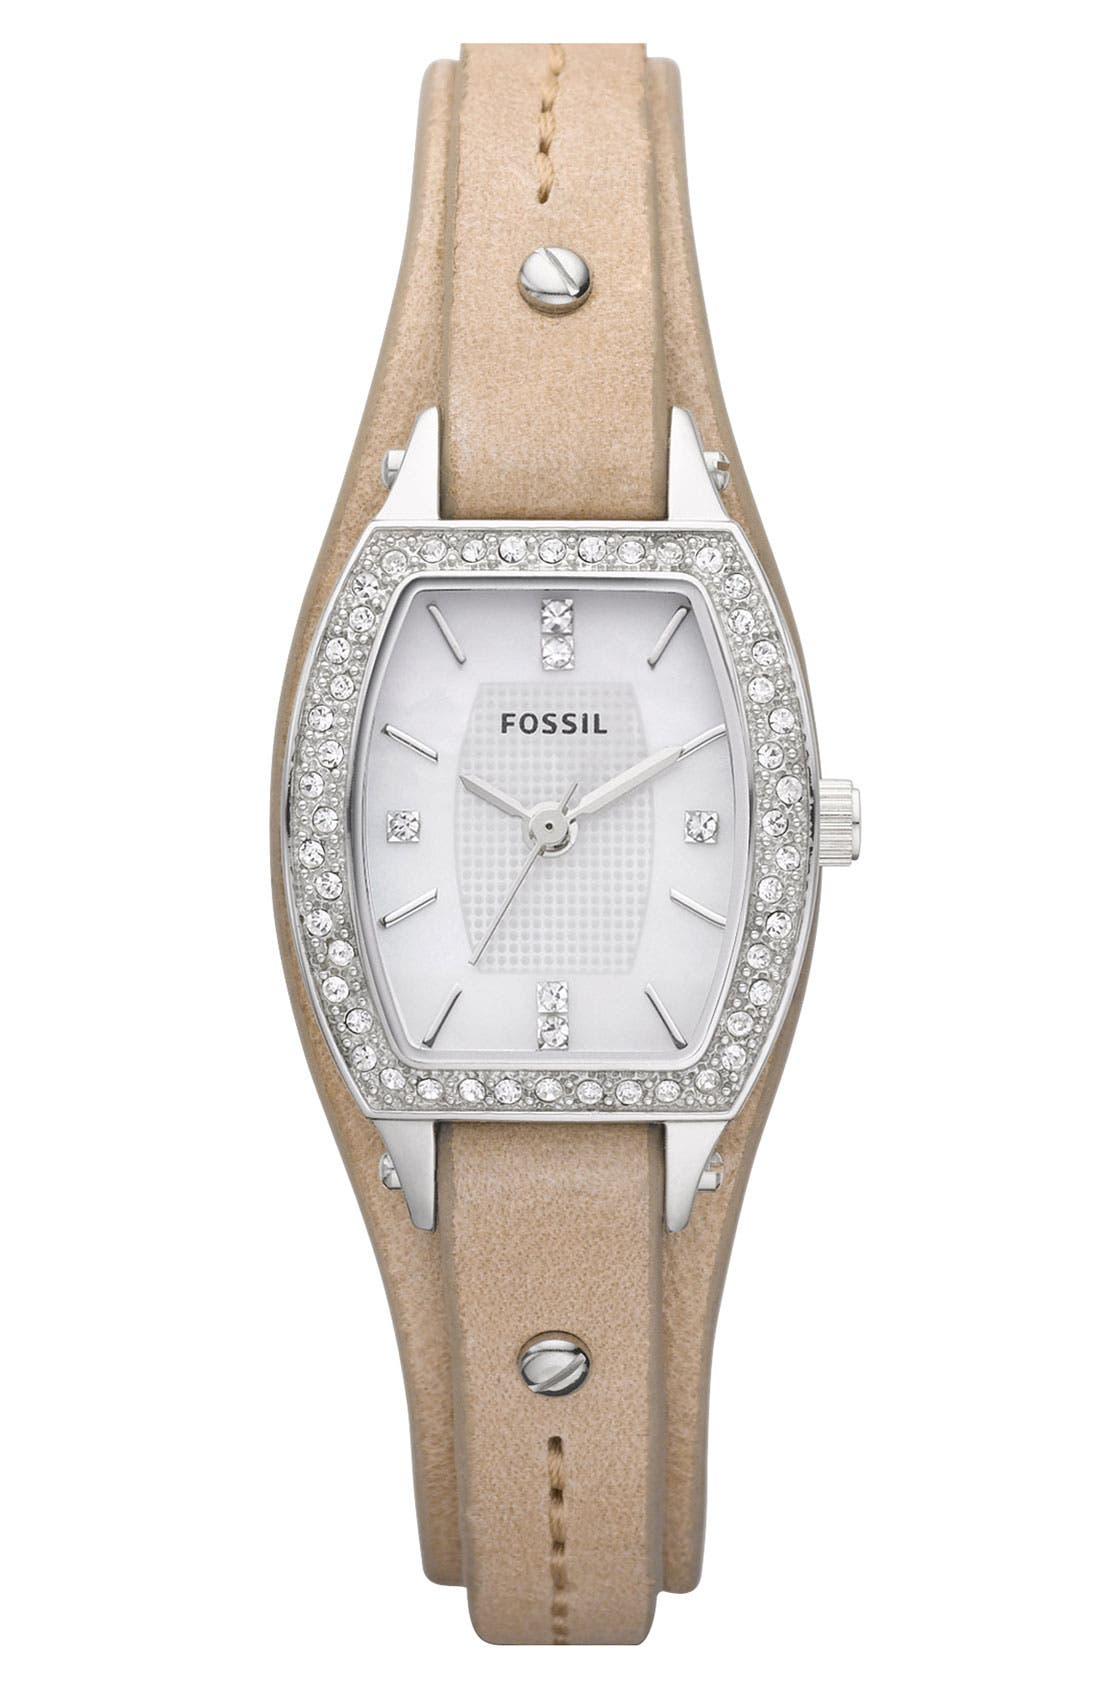 Main Image - Fossil Ladies' Crystal Accent Leather Cuff Watch, 24mm